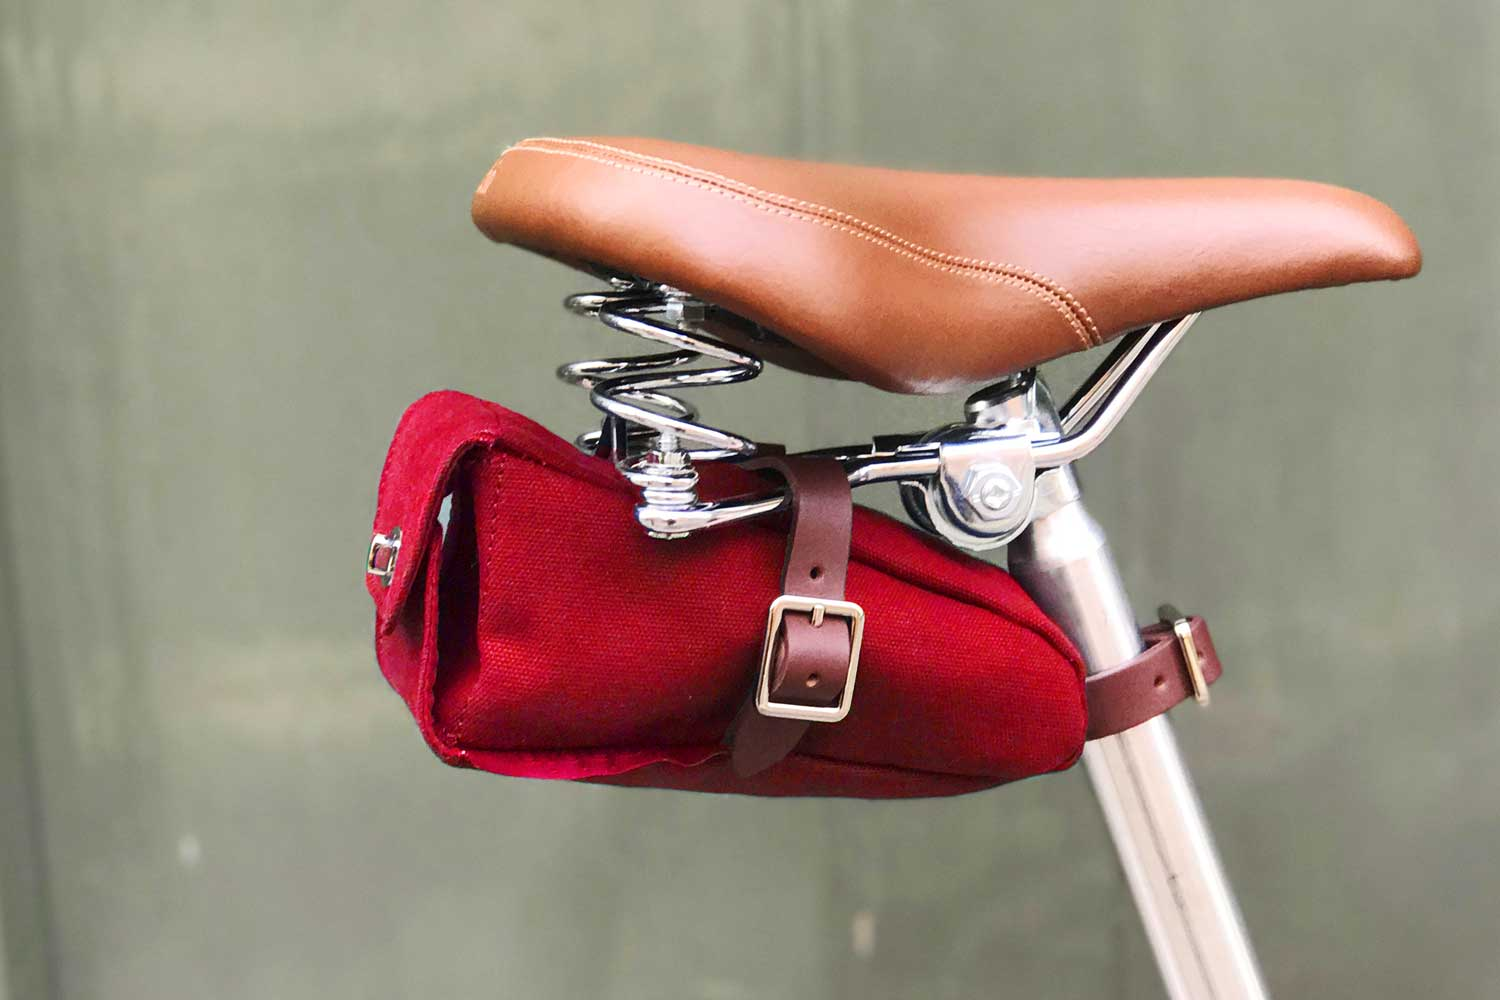 Daytripper Saddlebag (various)